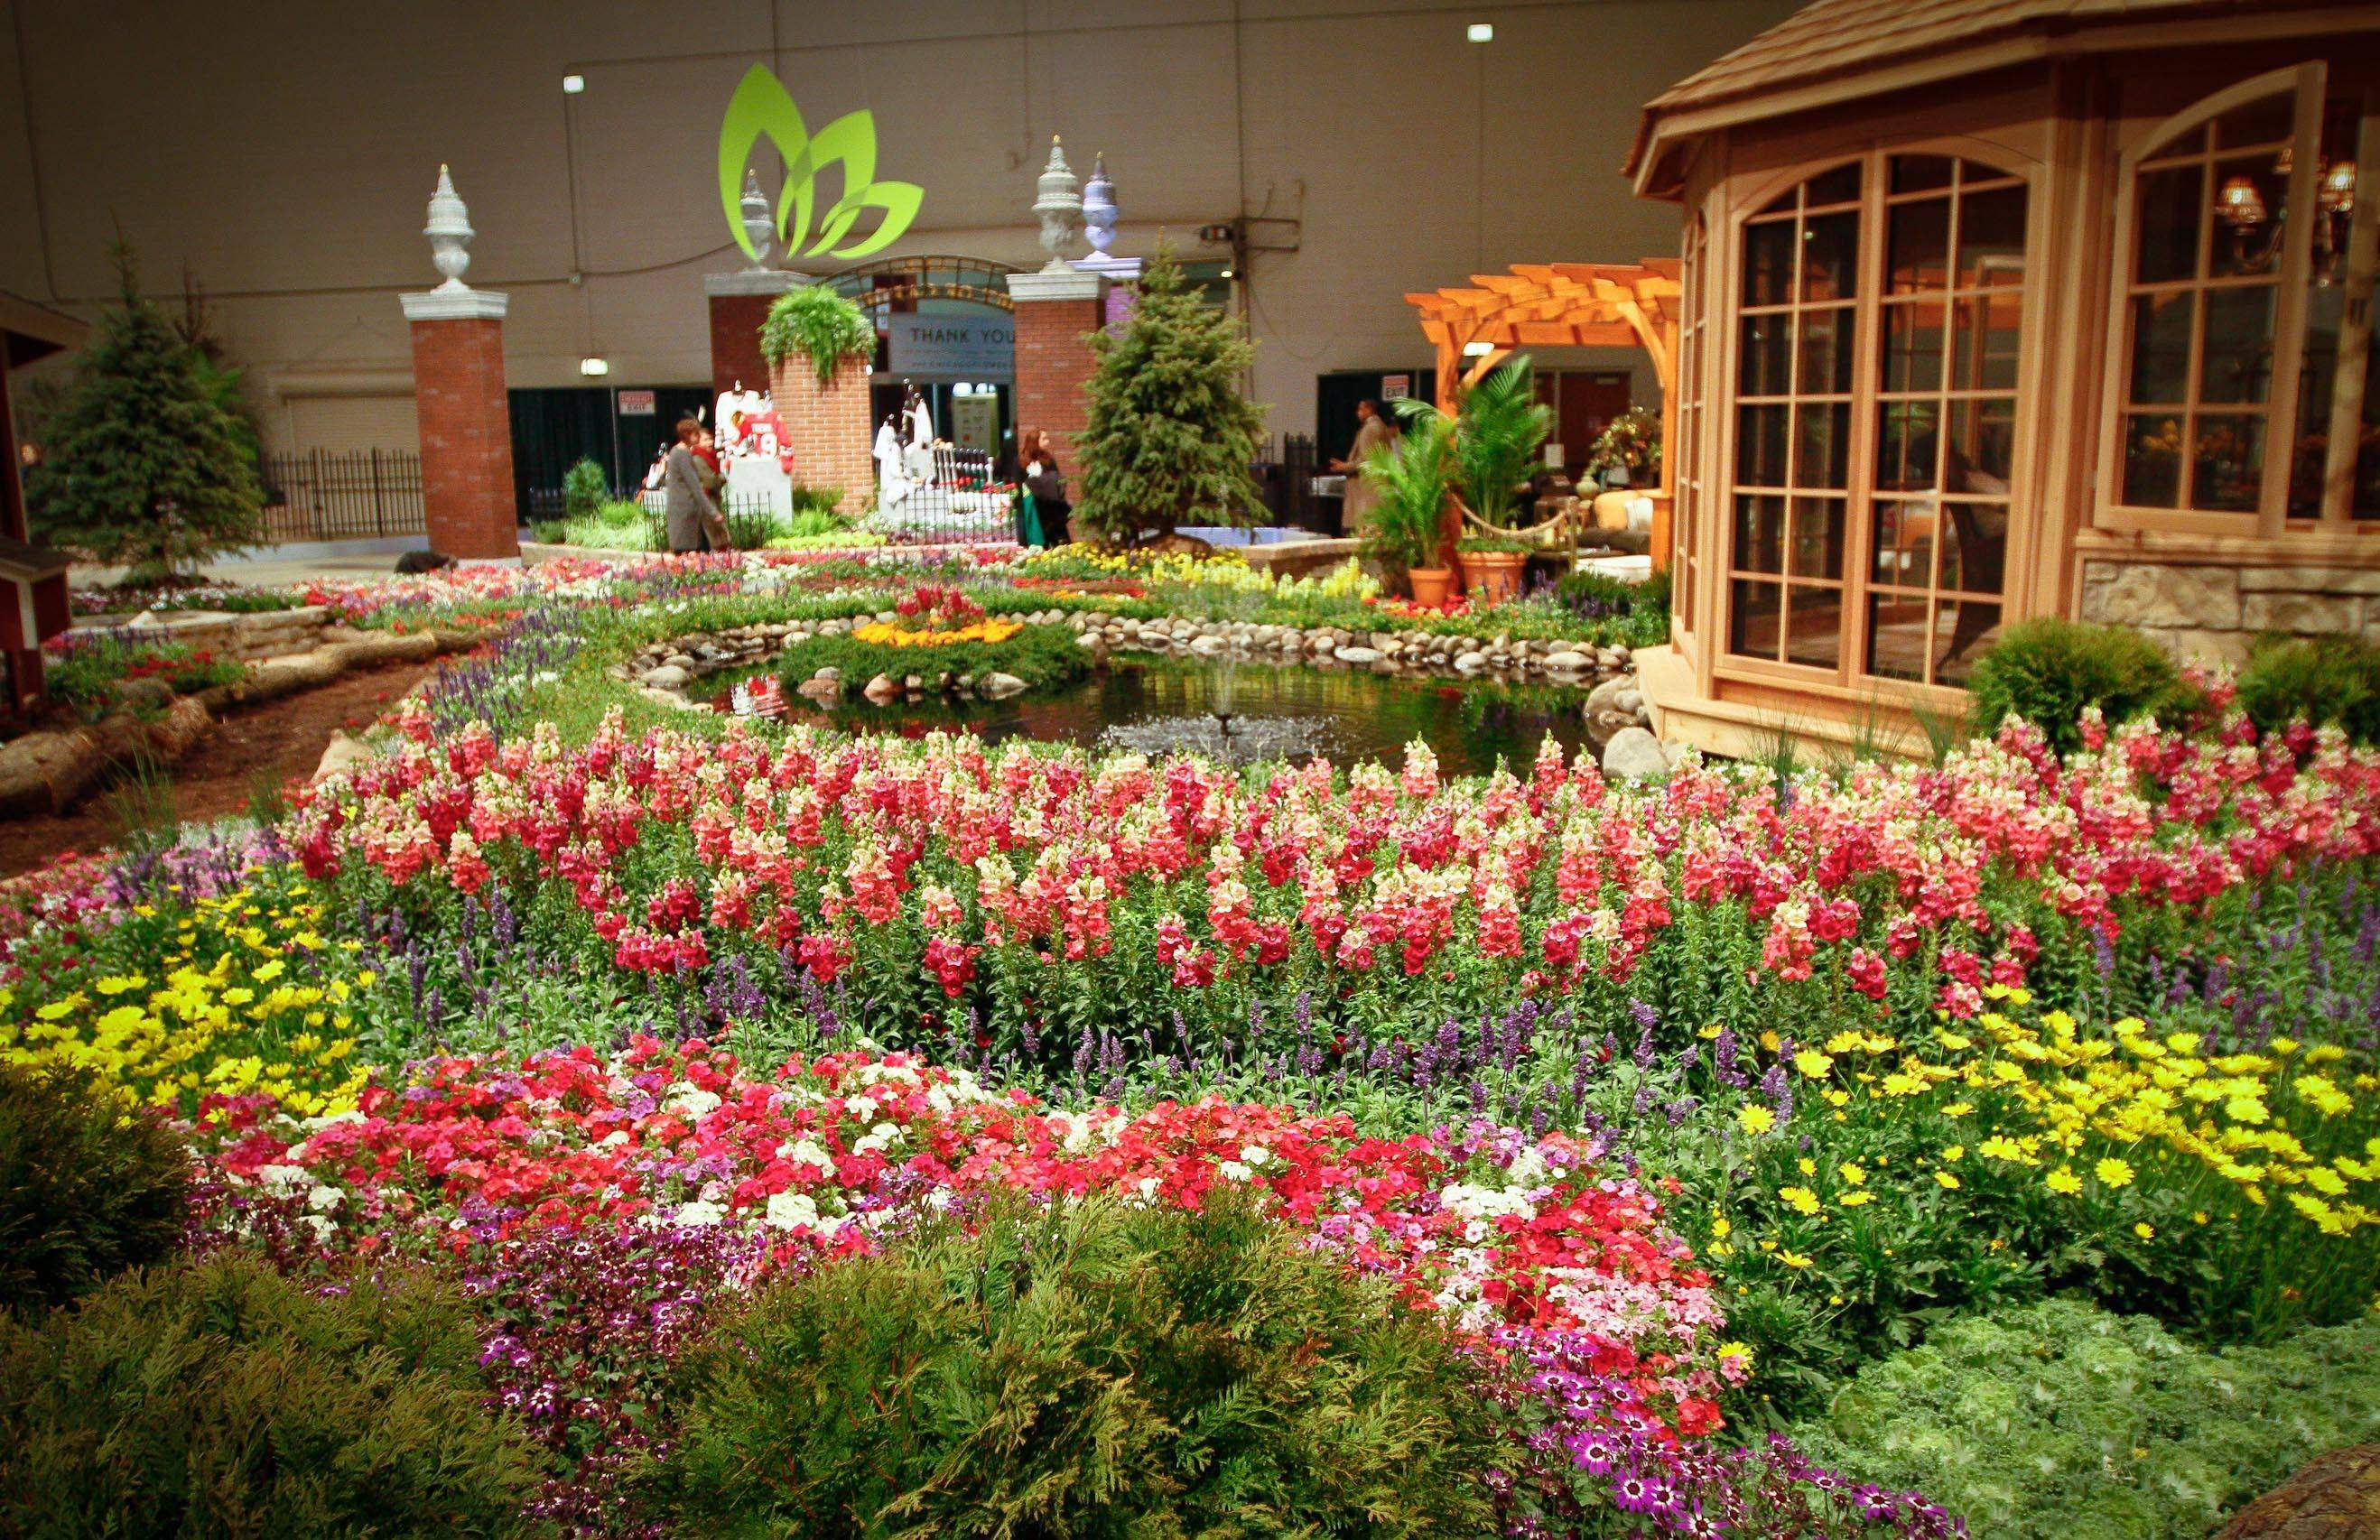 The 2012 Flower & Garden show returns to Navy Pier.